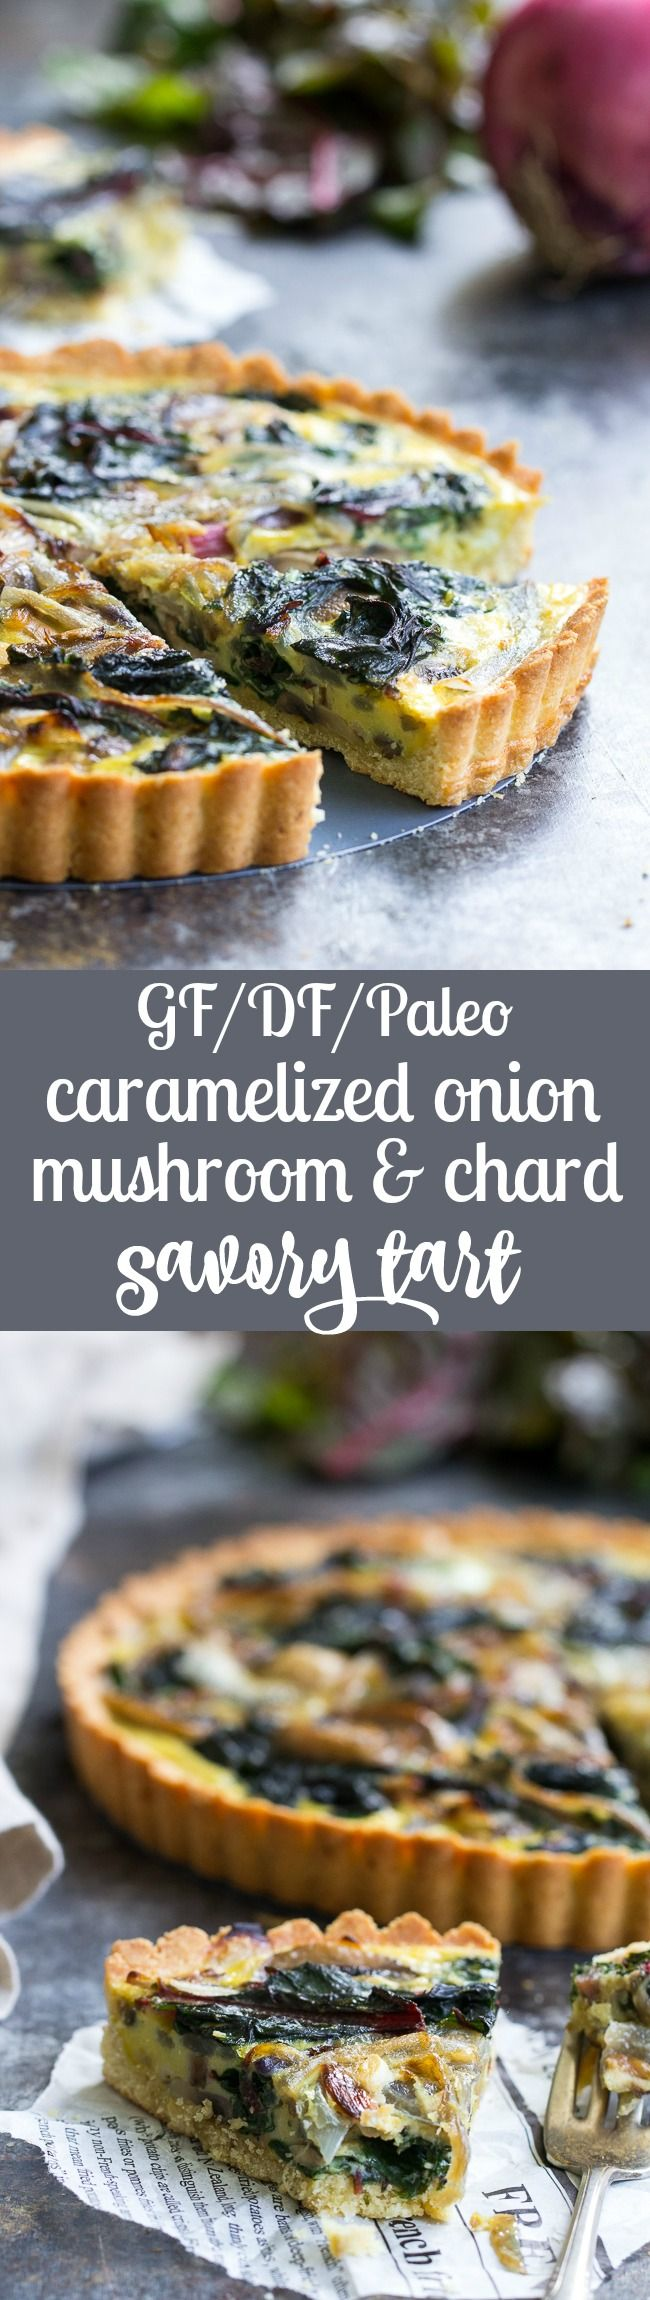 This savory tart starts with an easy grain free pastry crust and is packed with caramelized onions, mushrooms and red chard.  It's the perfect healthy addition to your weekend brunch!  Gluten free, dairy free and paleo.